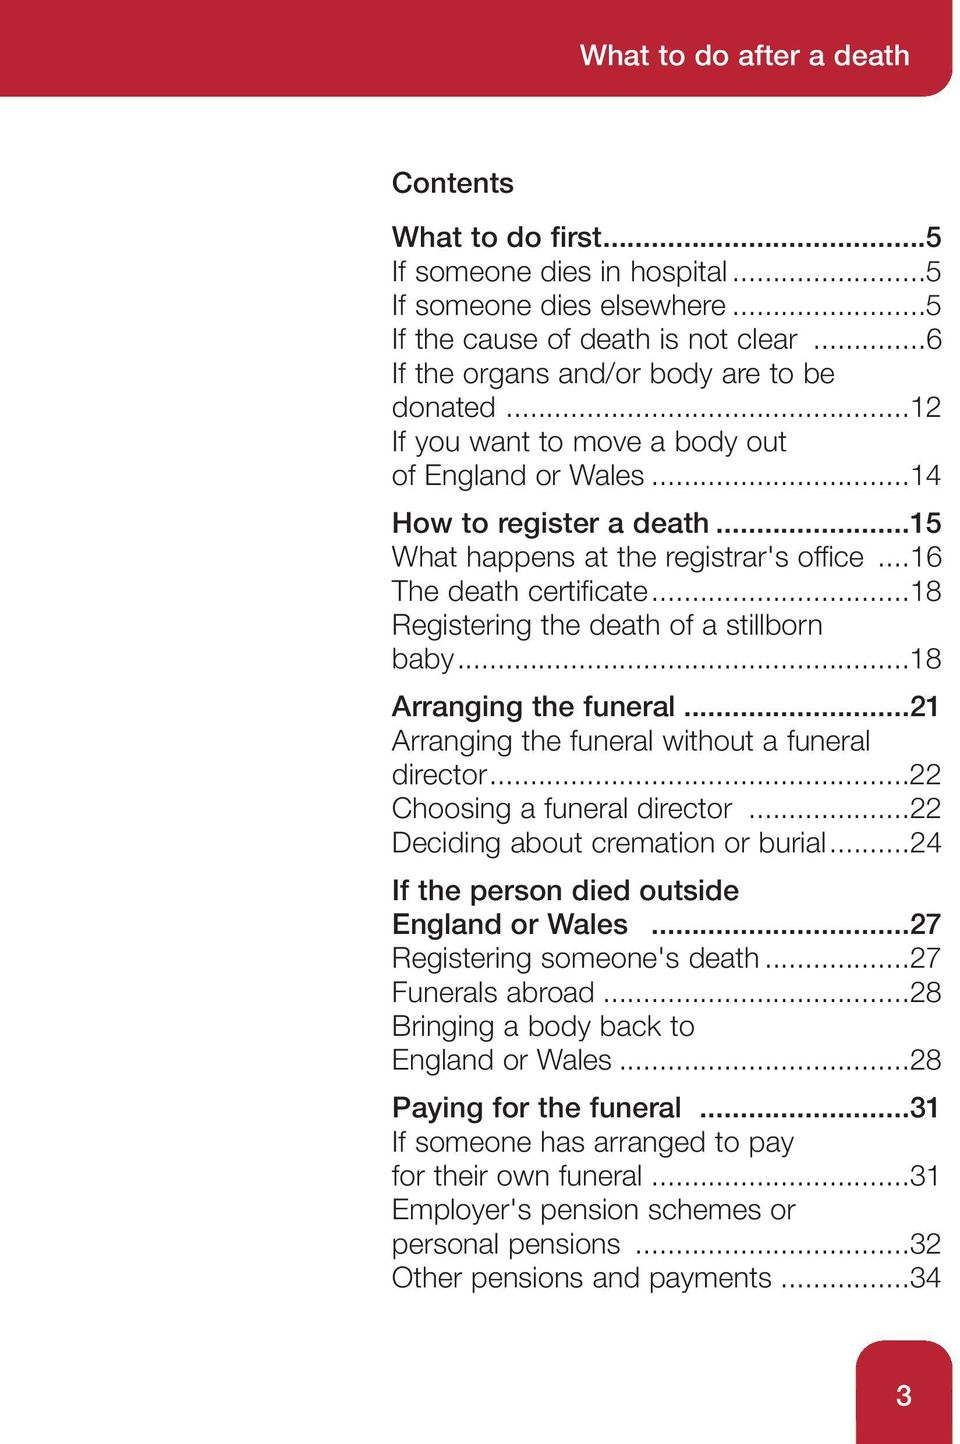 ..18 Registering the death of a stillborn baby...18 Arranging the funeral...21 Arranging the funeral without a funeral director...22 Choosing a funeral director...22 Deciding about cremation or burial.